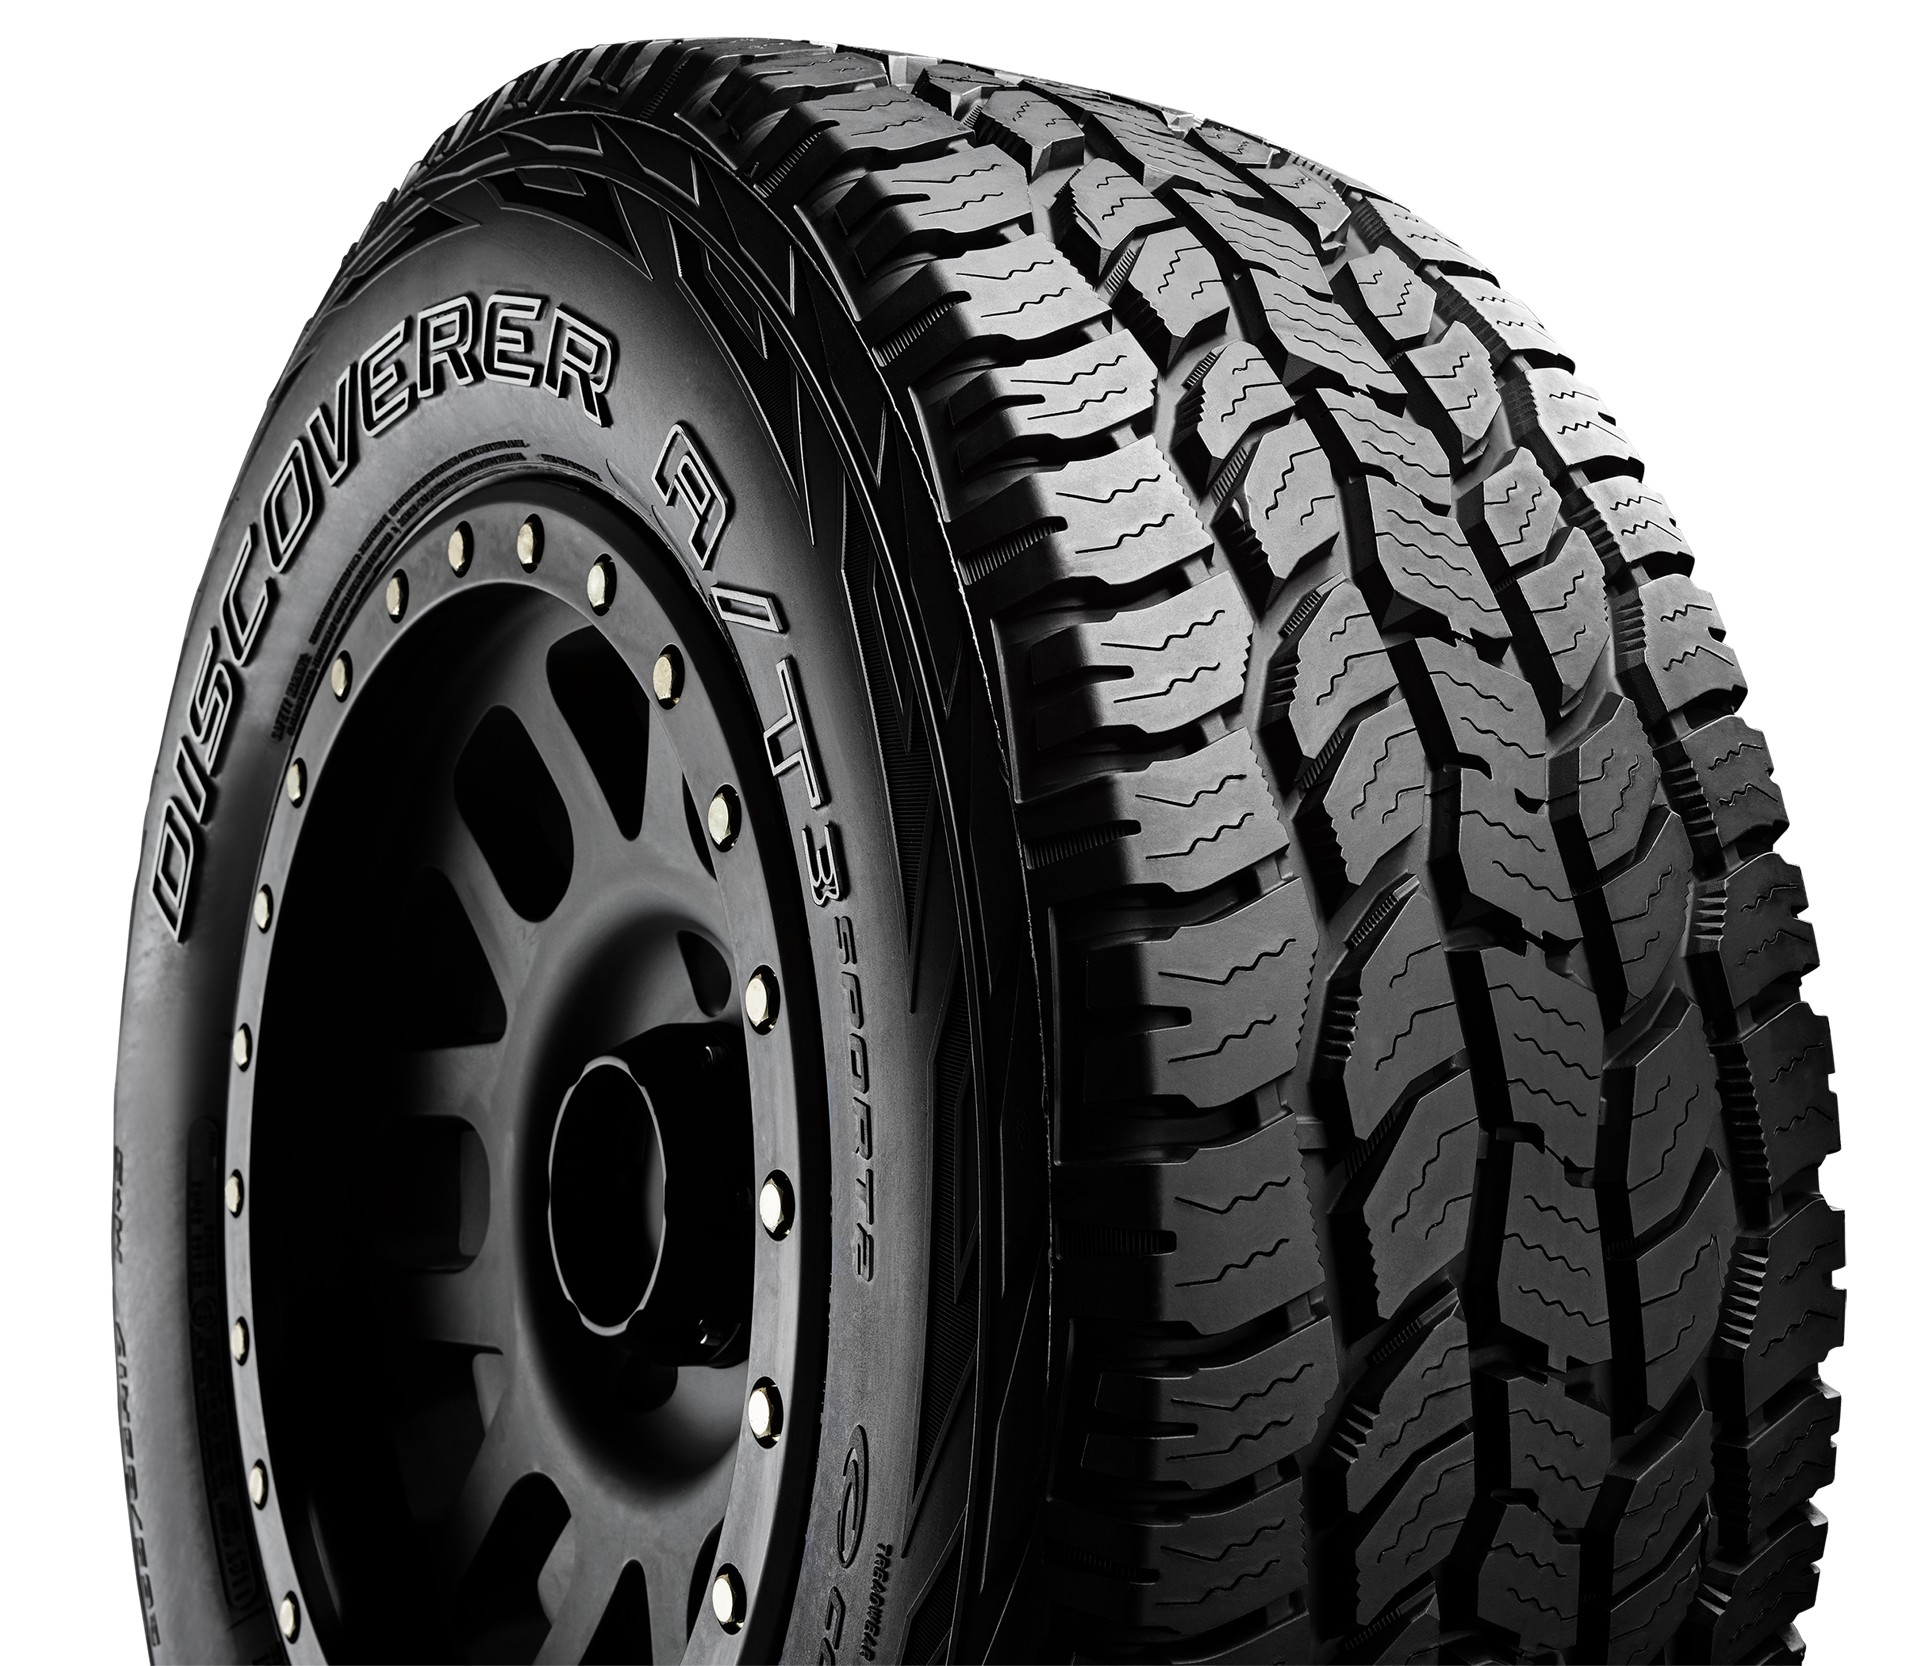 Gomme Nuove Cooper Tyres 265/60 R18 110T DISC.AT3 SPORT2 OWL M+S pneumatici nuovi All Season